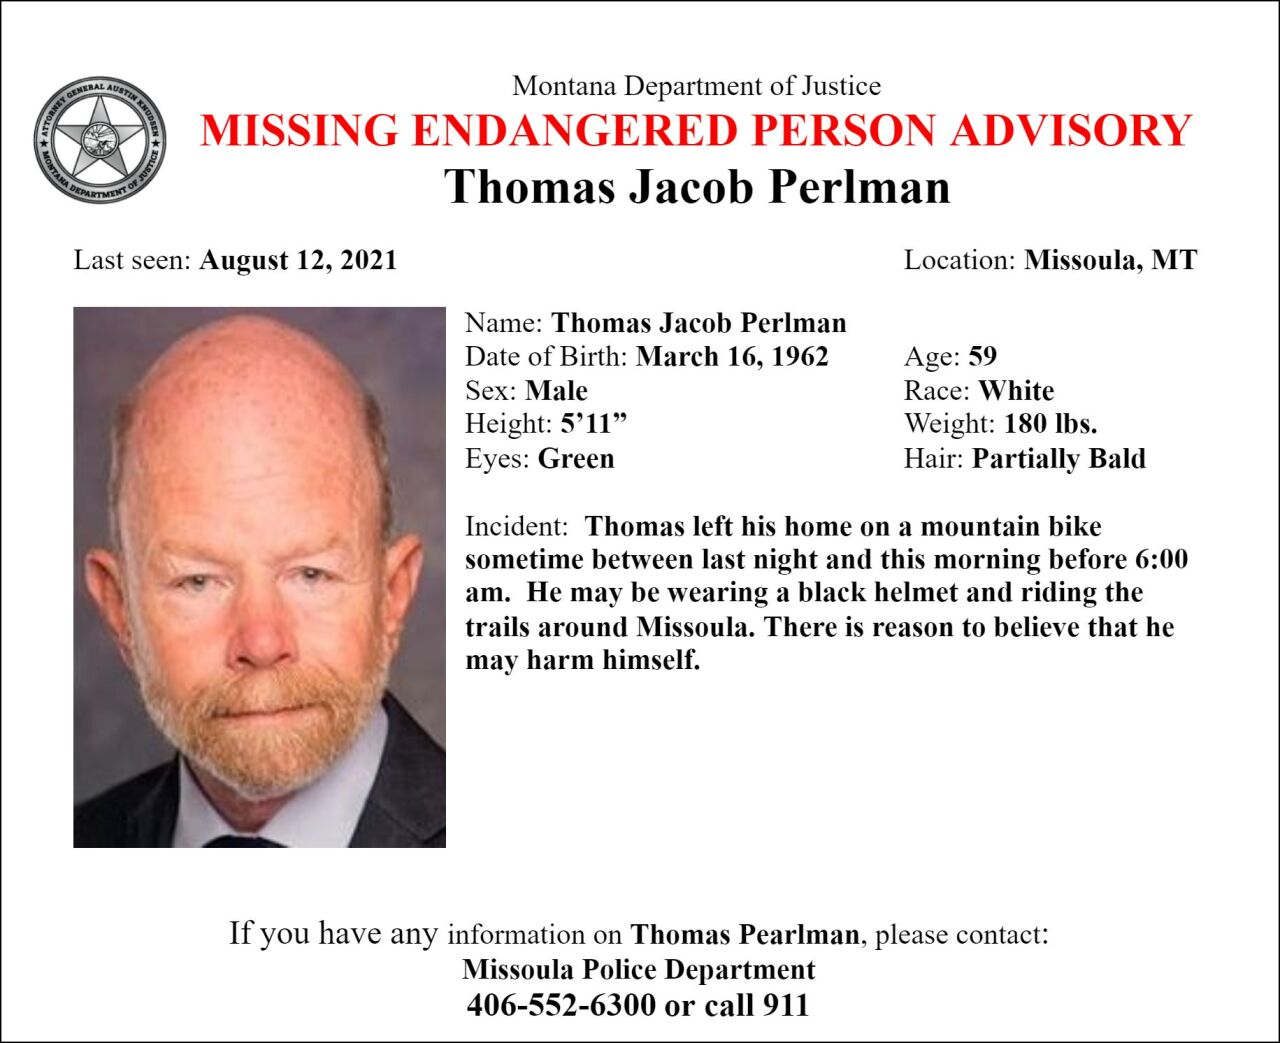 Missing Endangered Person Advisory has been issued for Thomas Jacob Perlman